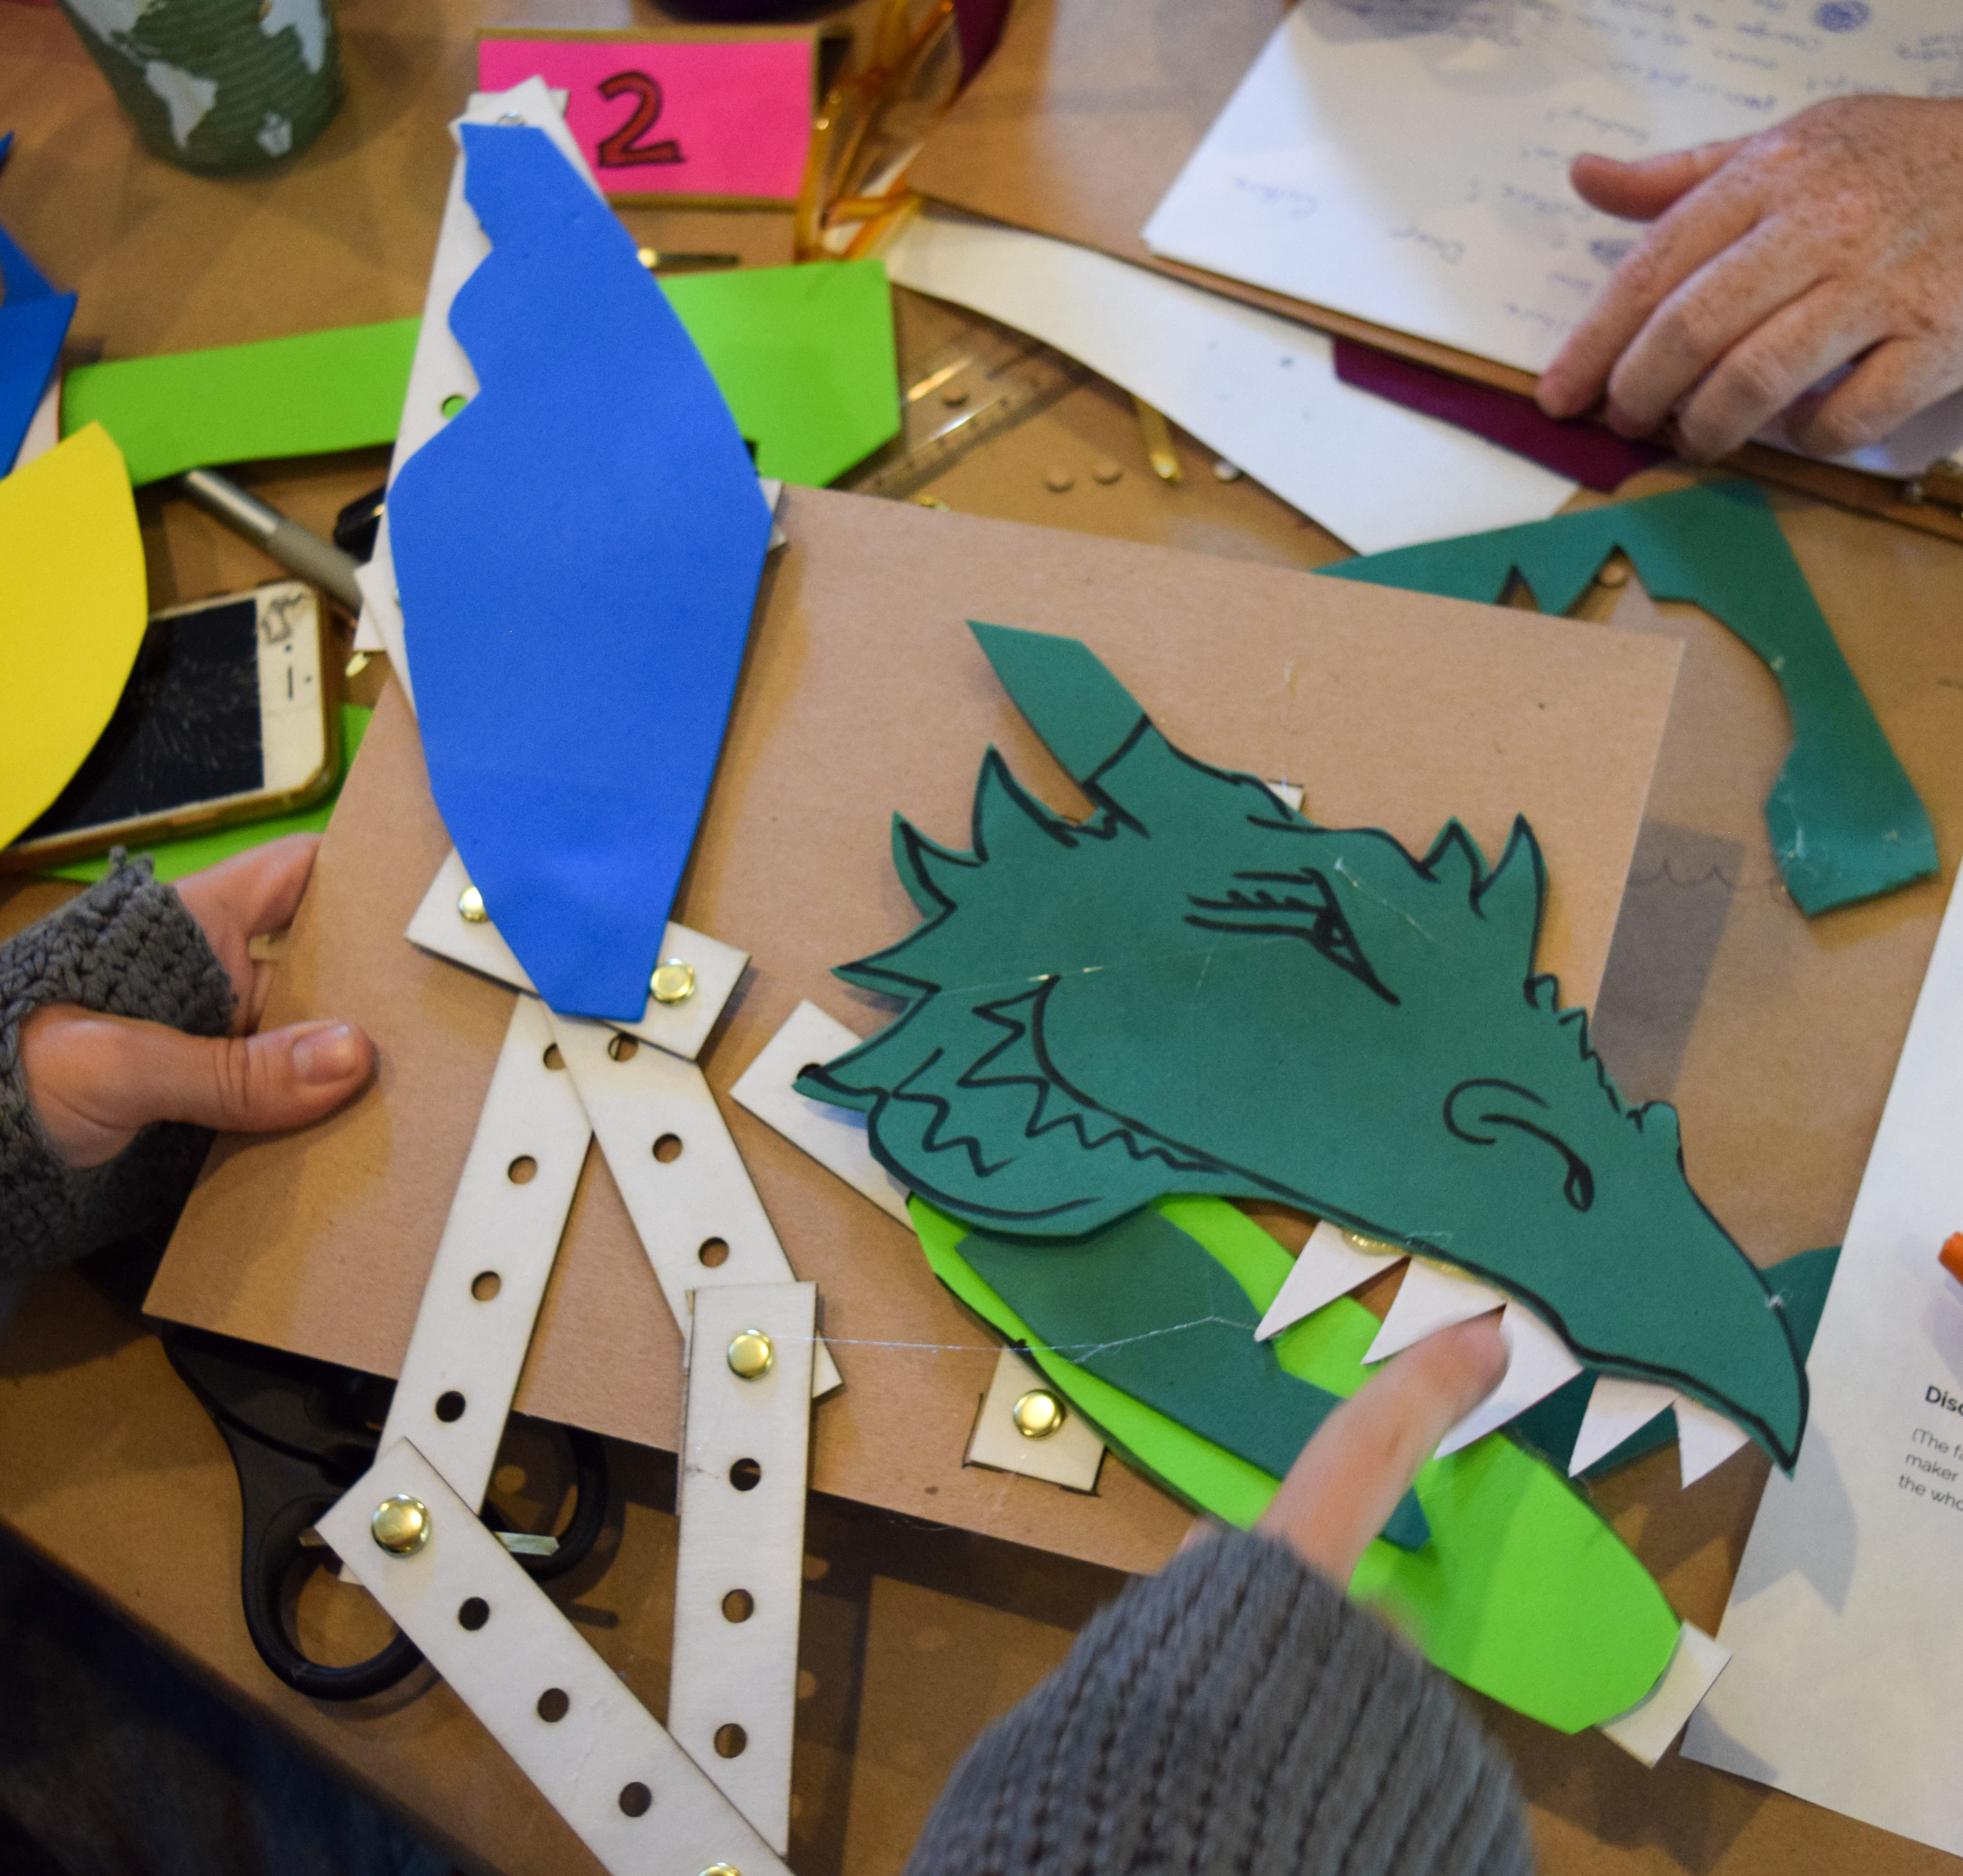 A cardboard linkage creature, a dragon. The dragon is made of green foam, with a blue wing, and sharp white teeth.